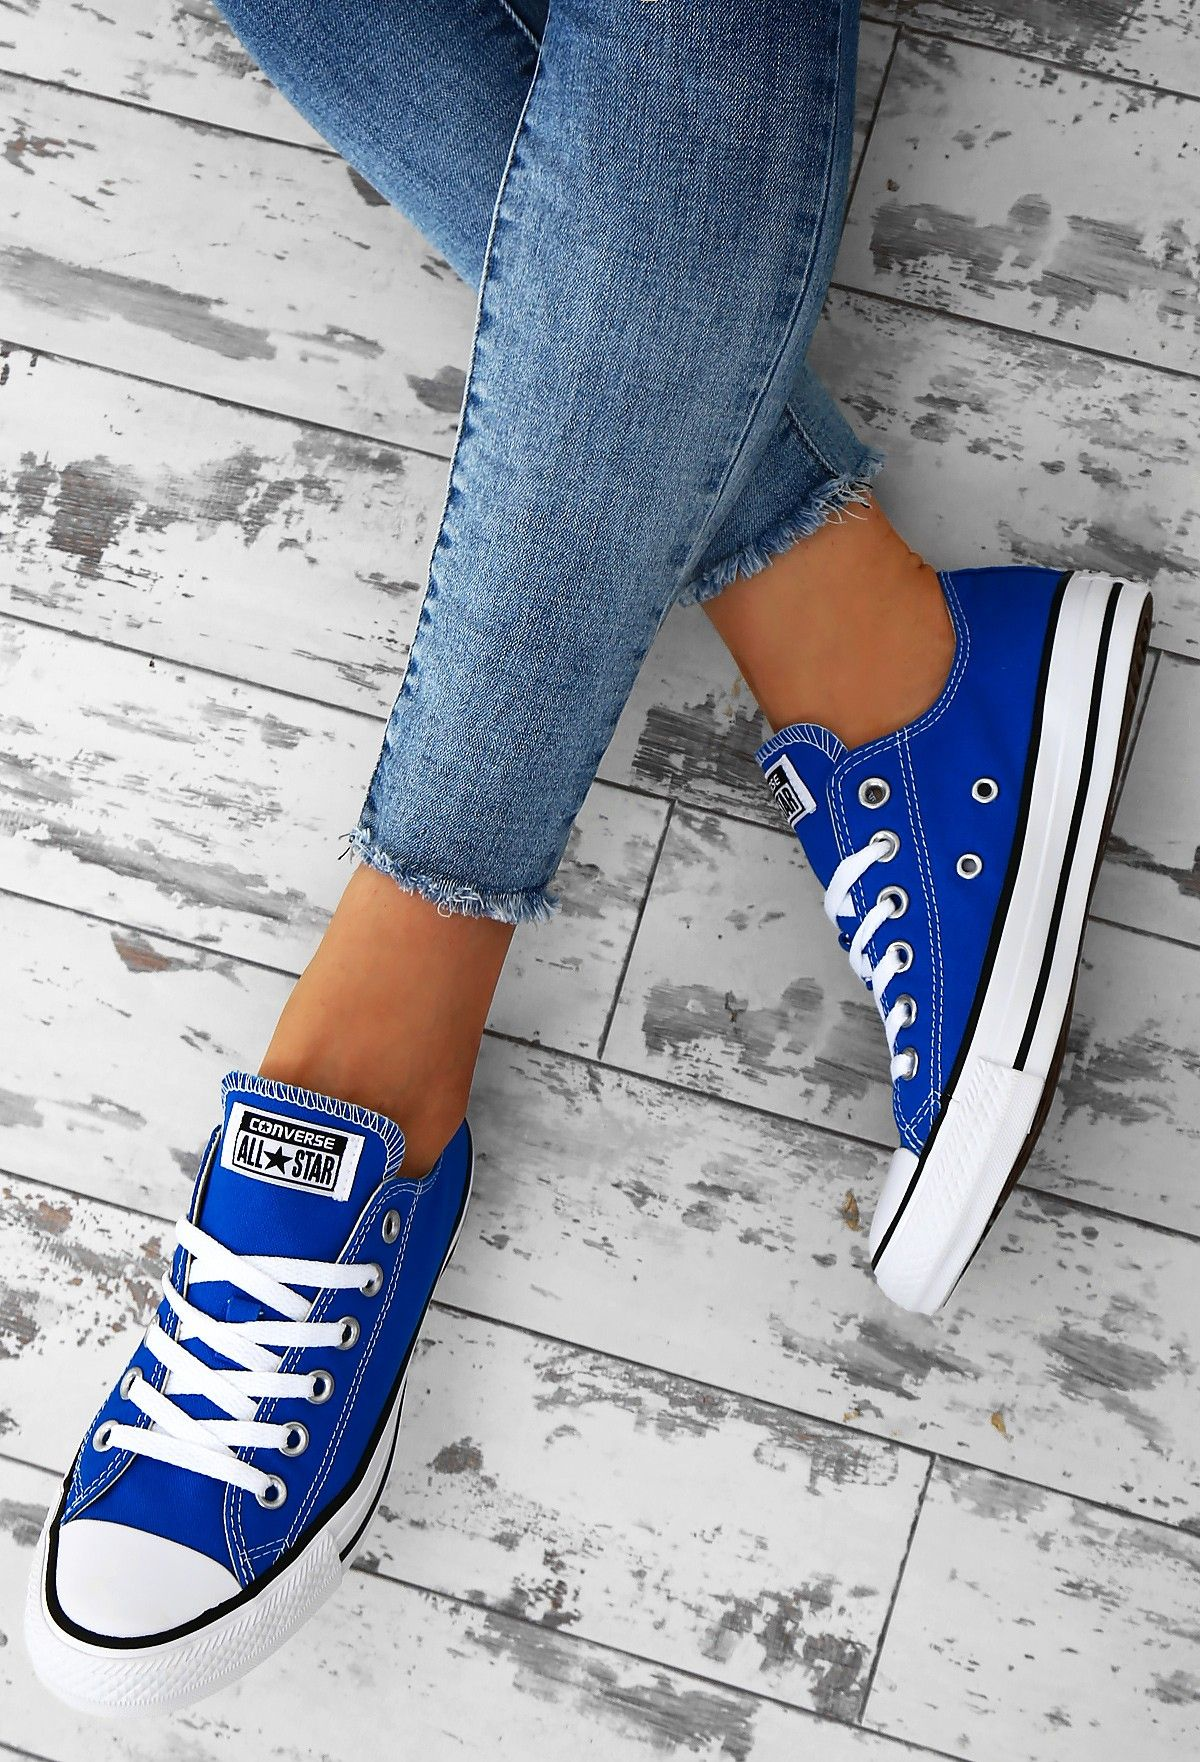 2c049eecde4804 Chuck Taylor Converse All Star Blue Trainers - UK 4 in 2019